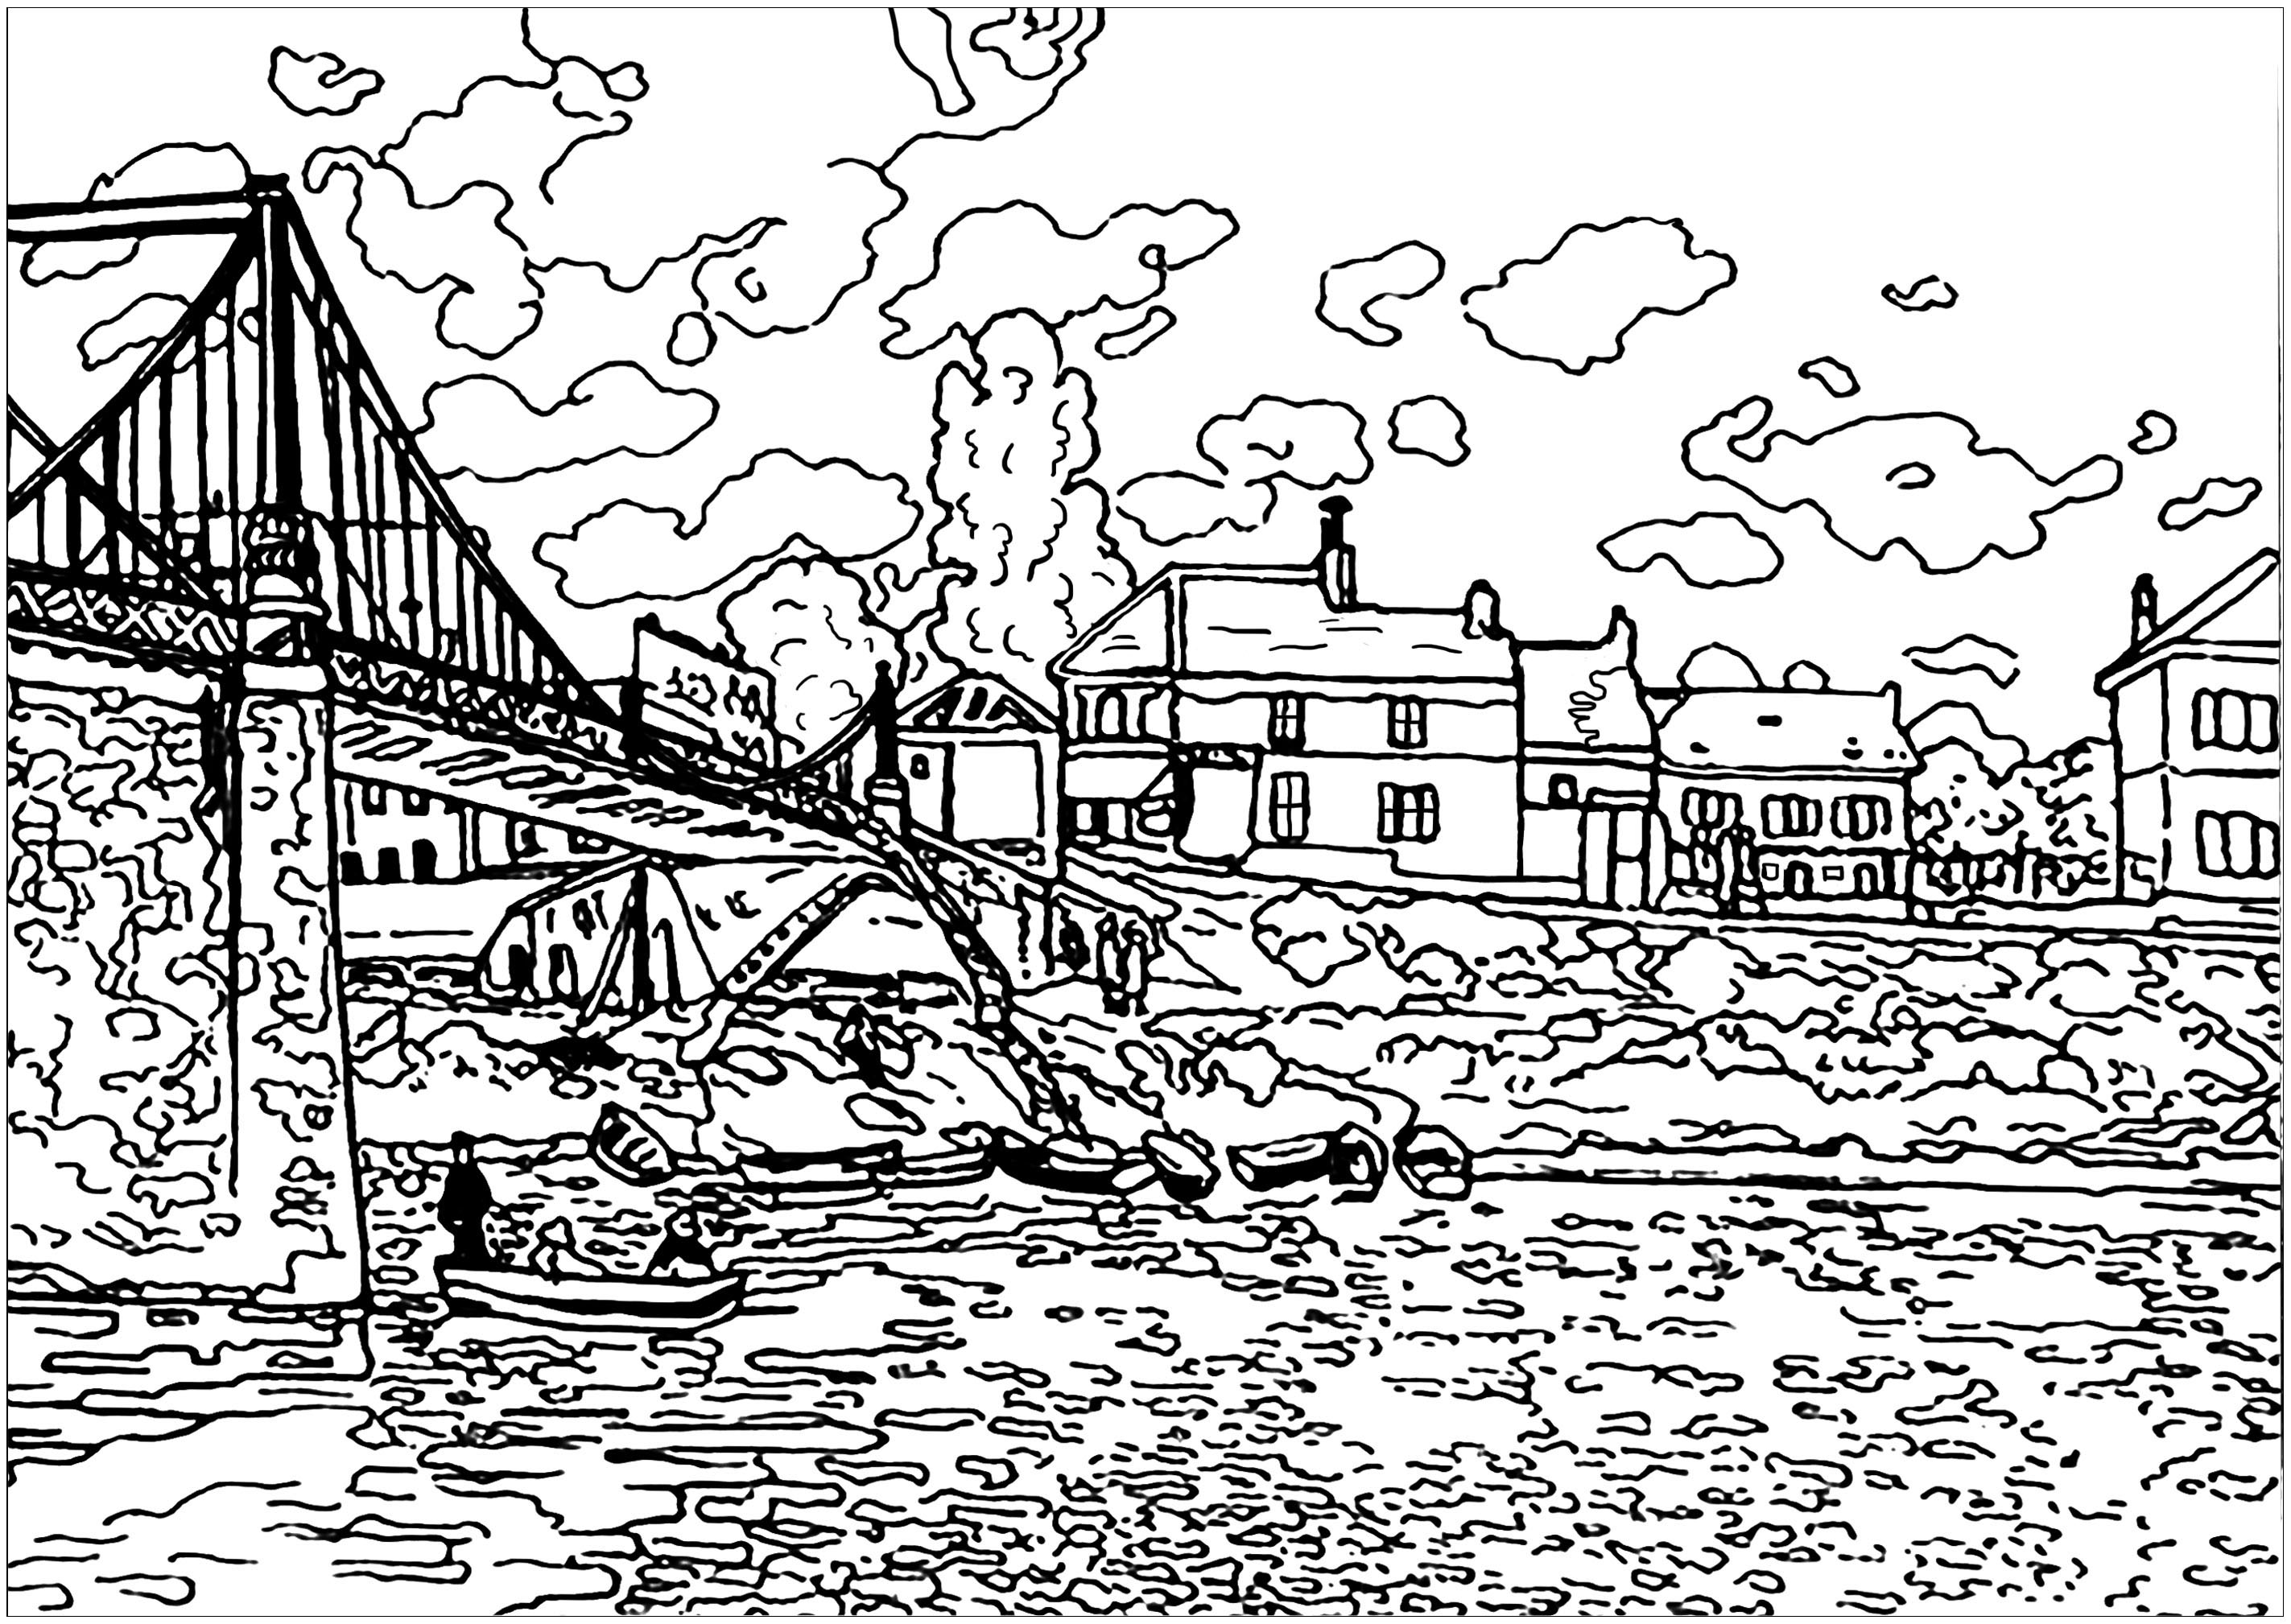 Coloring page created from a painting by Alfred Sisley, famous French Impressionist landscape painter